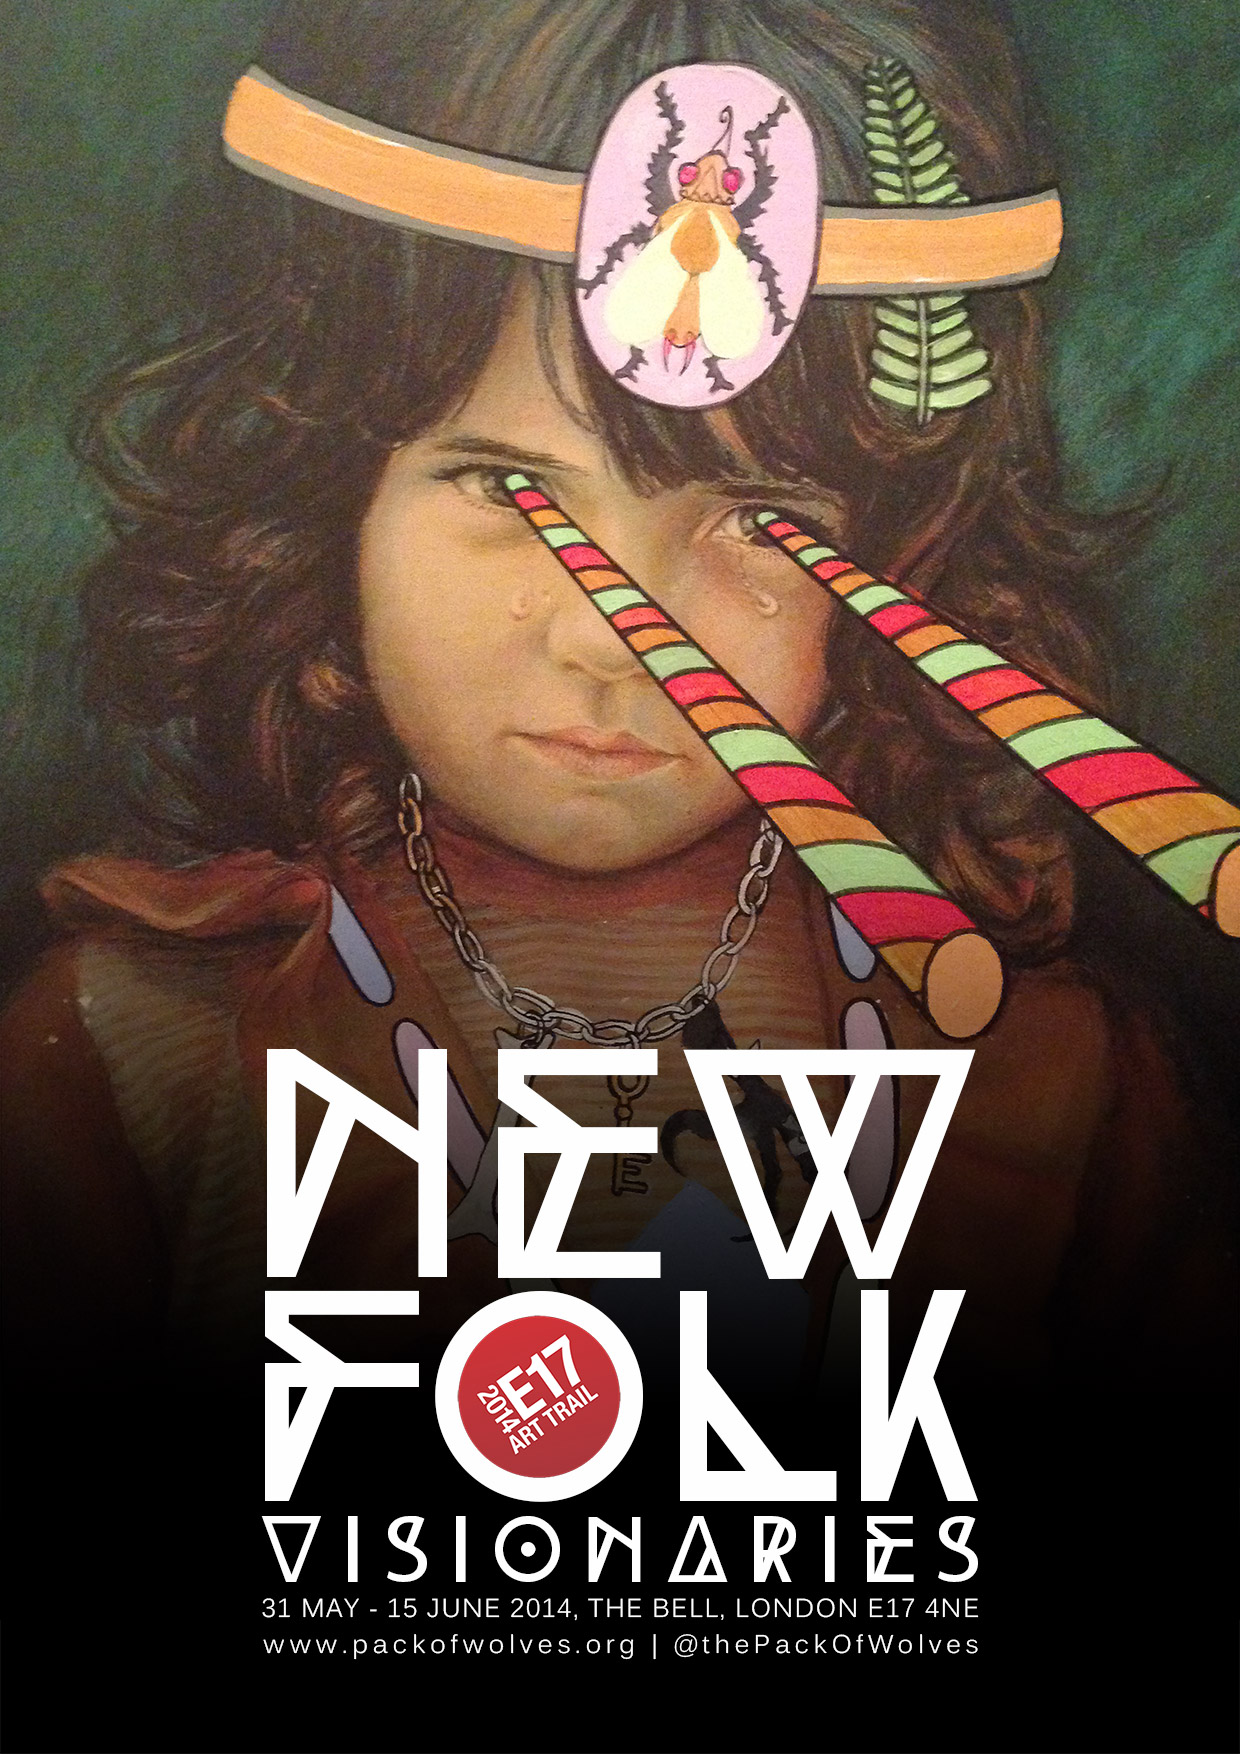 New Folk Visionaries - Contemporary Folk Art Exhibition